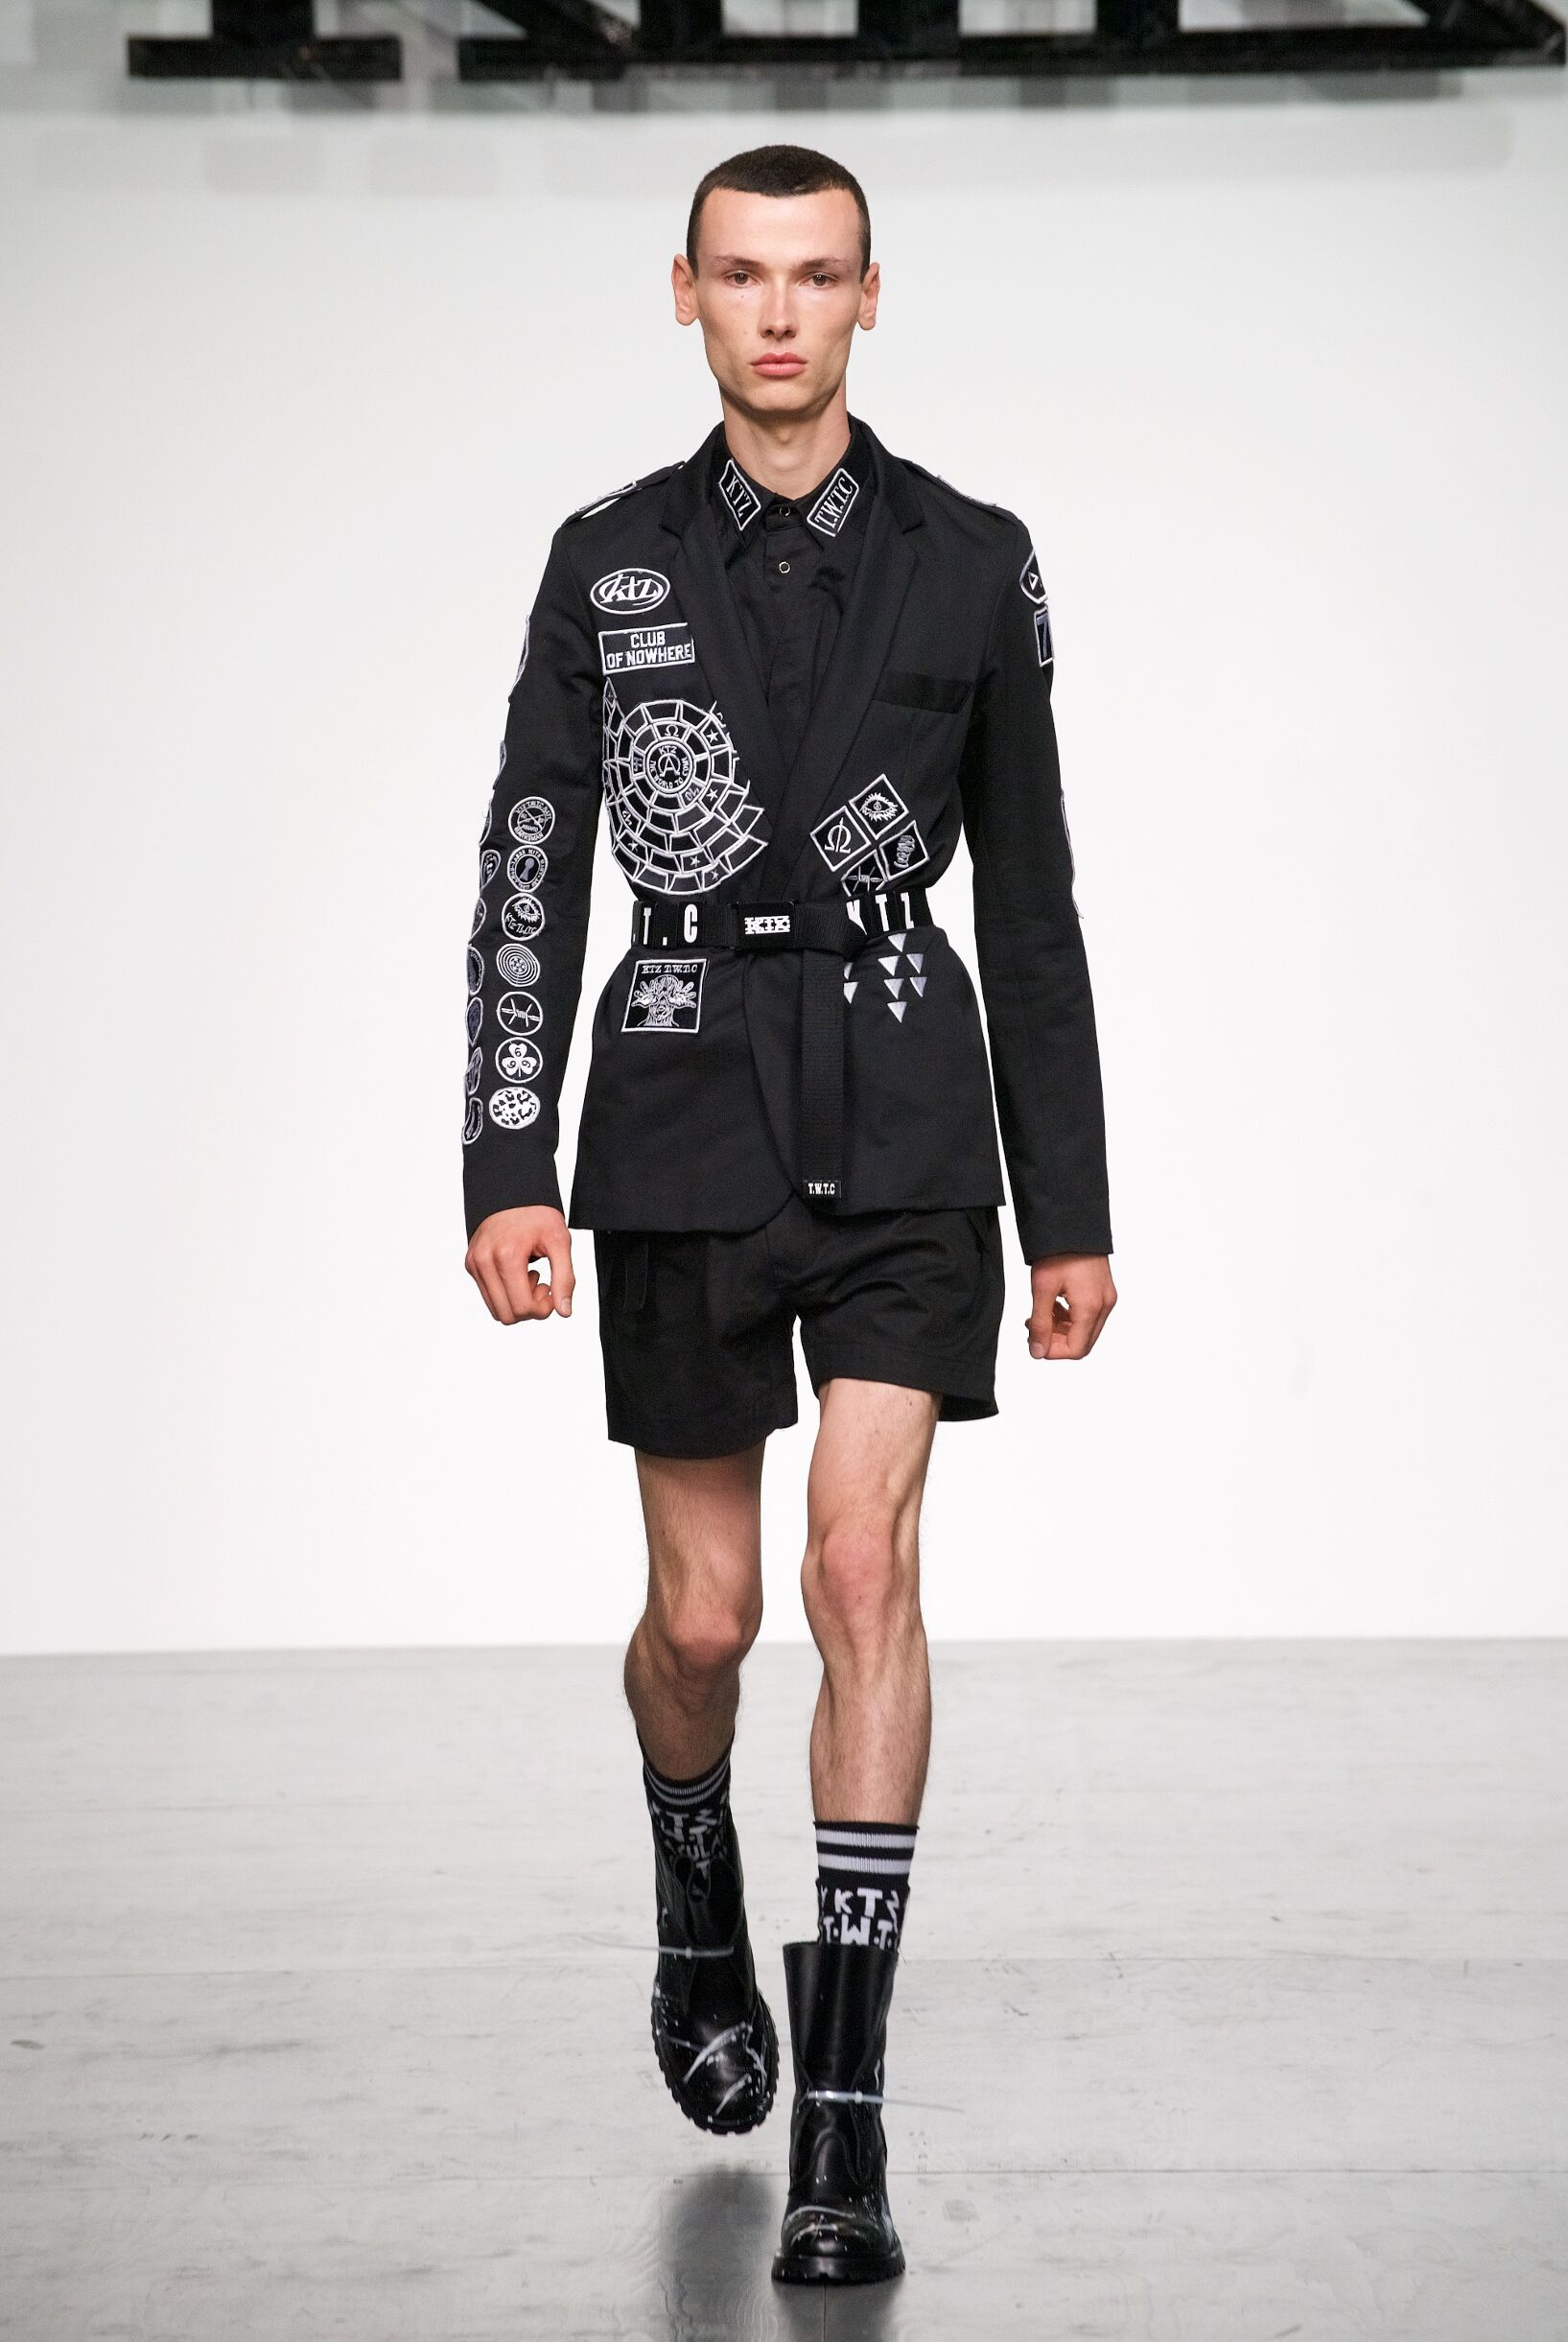 KTZ SPRING SUMMER 2018 MEN'S COLLECTION | The Skinny Beep